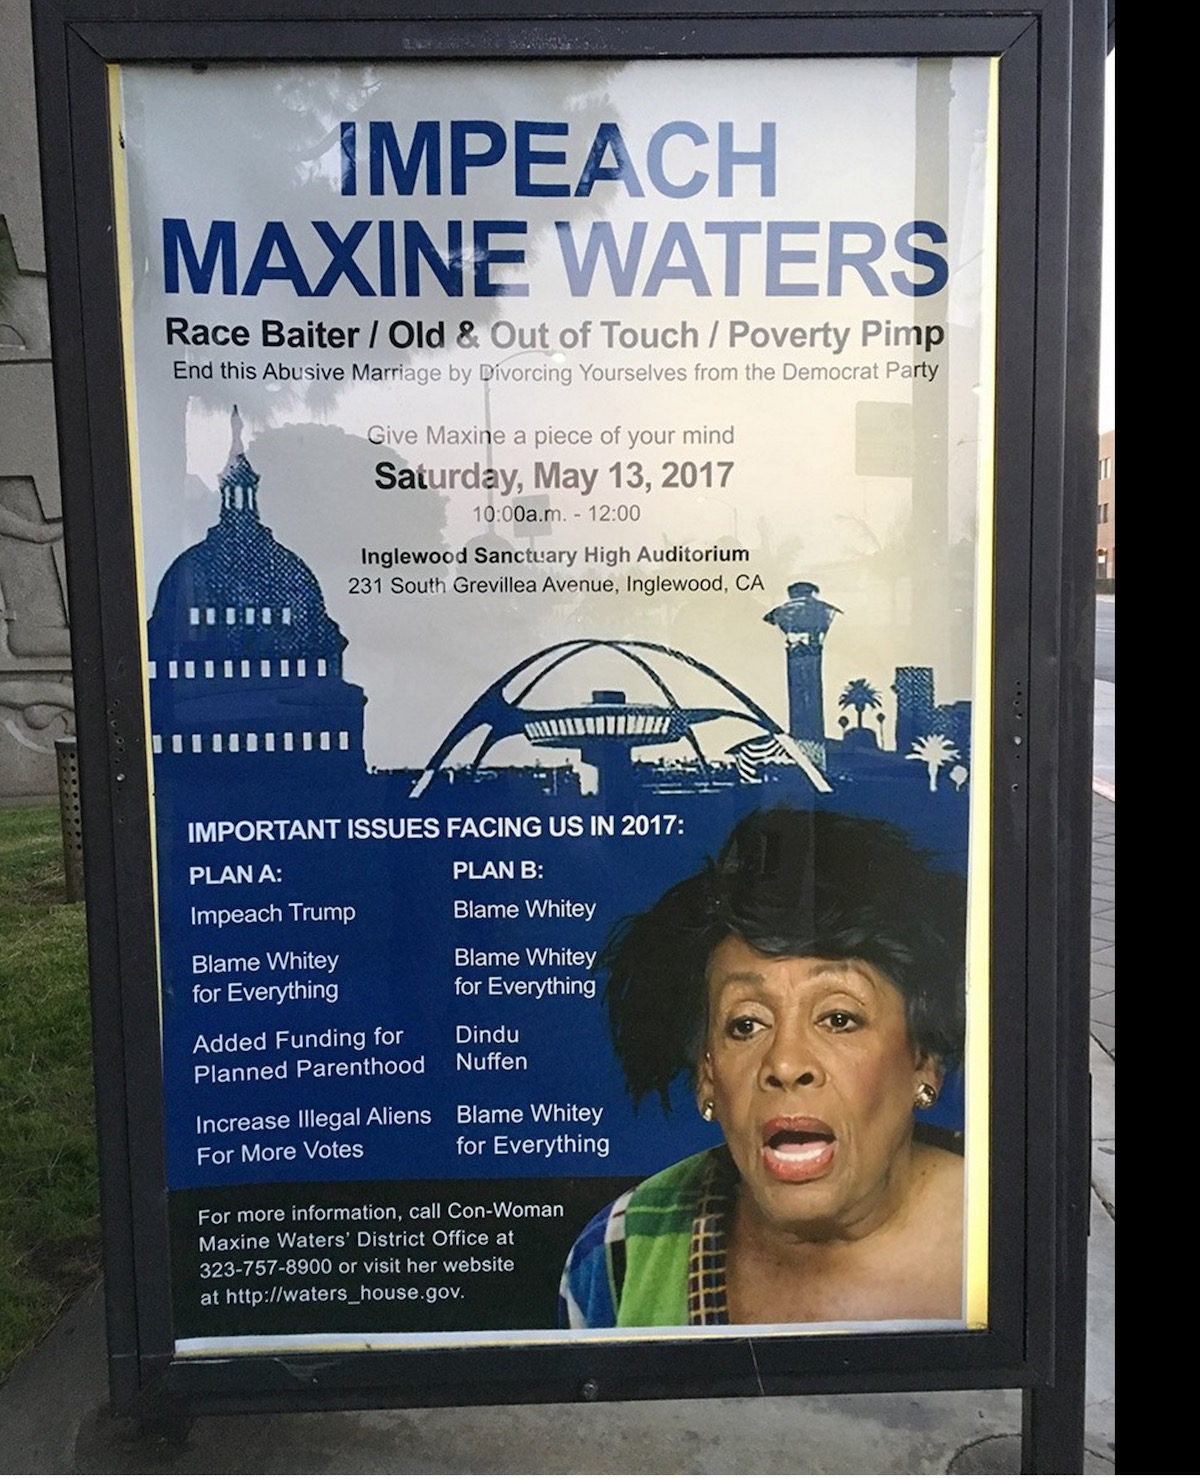 Quotes About Anger And Rage: 'Poverty Pimp' Maxine Waters MOCKED By Street Art In Los